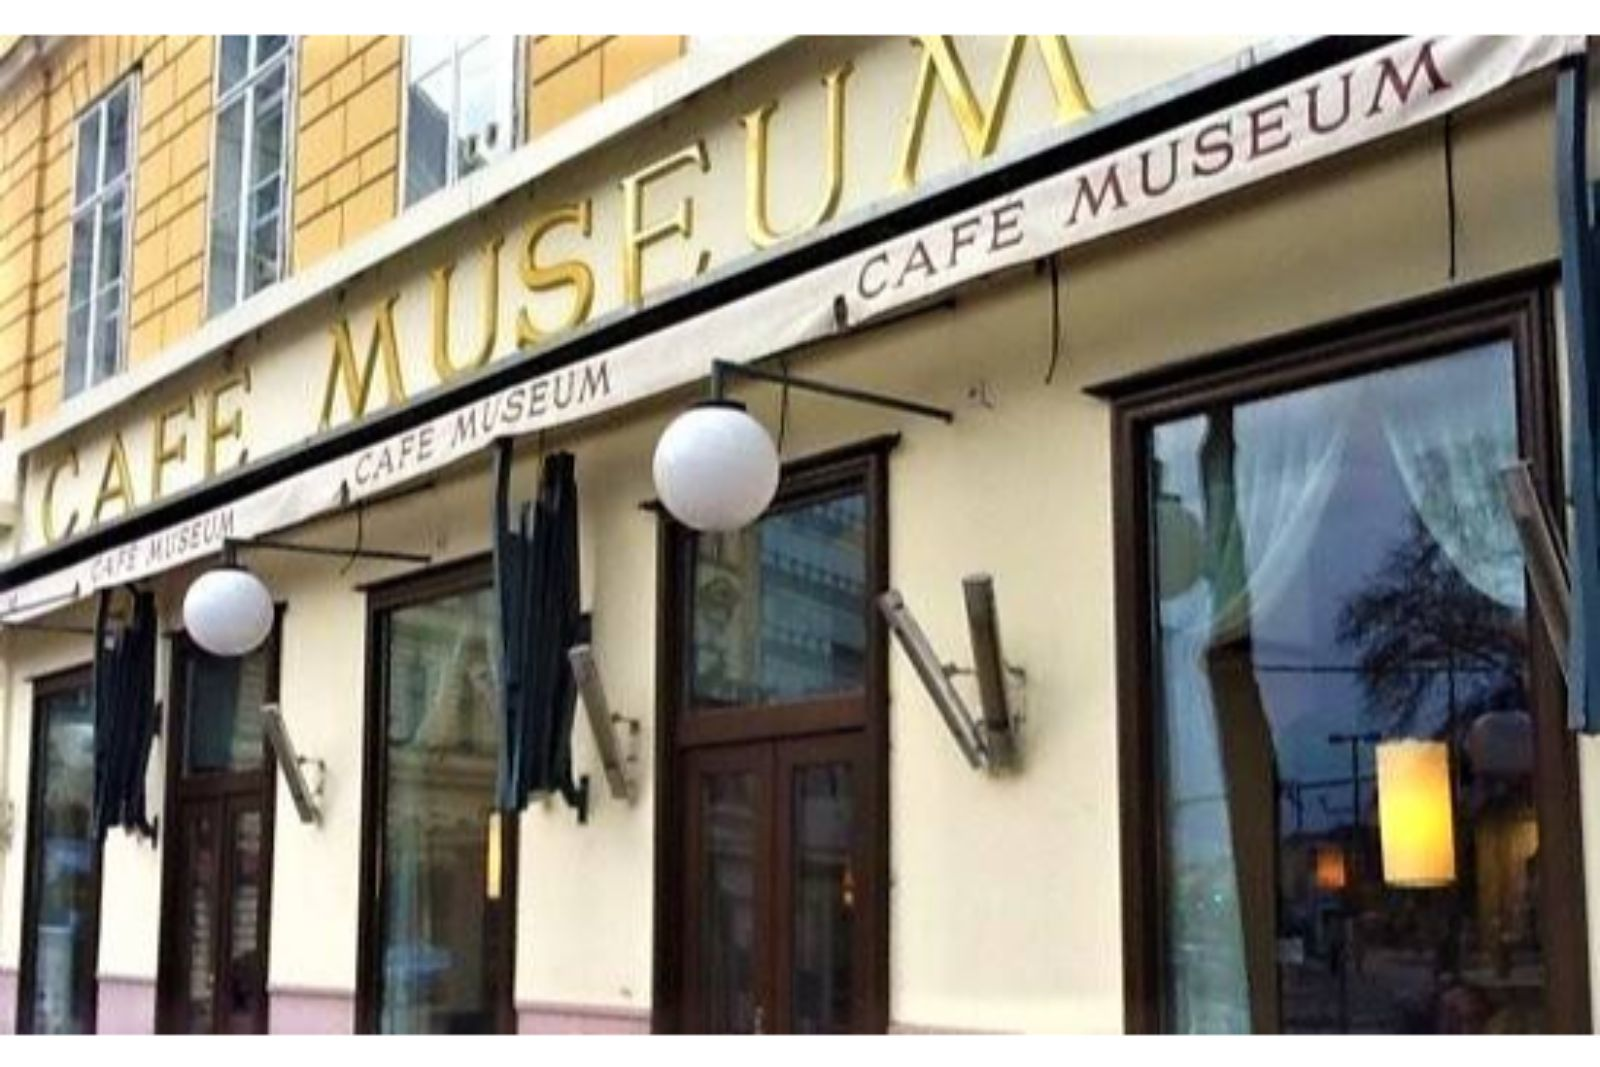 cafe museum 9